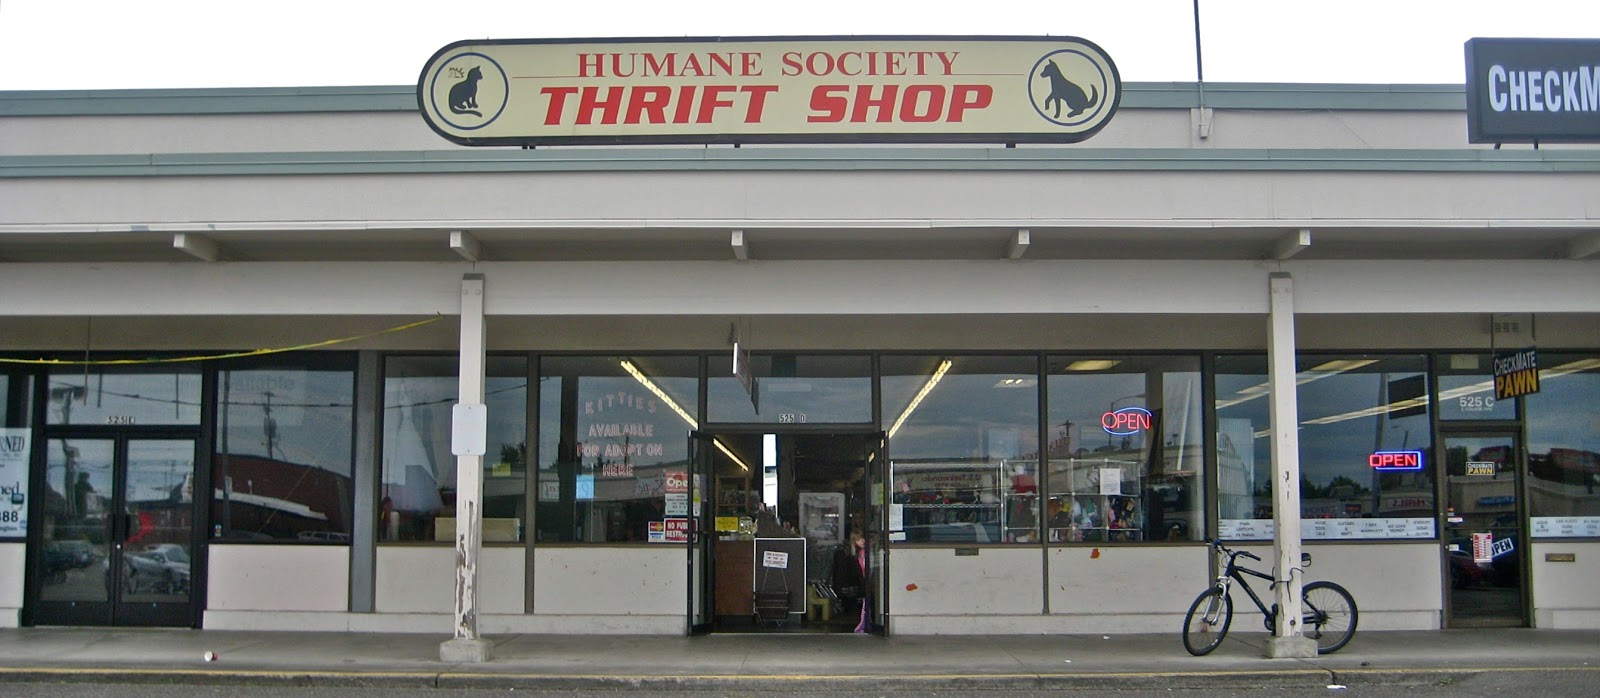 Humane Society of Skagit Valley: The Humane Society Thrift Shop